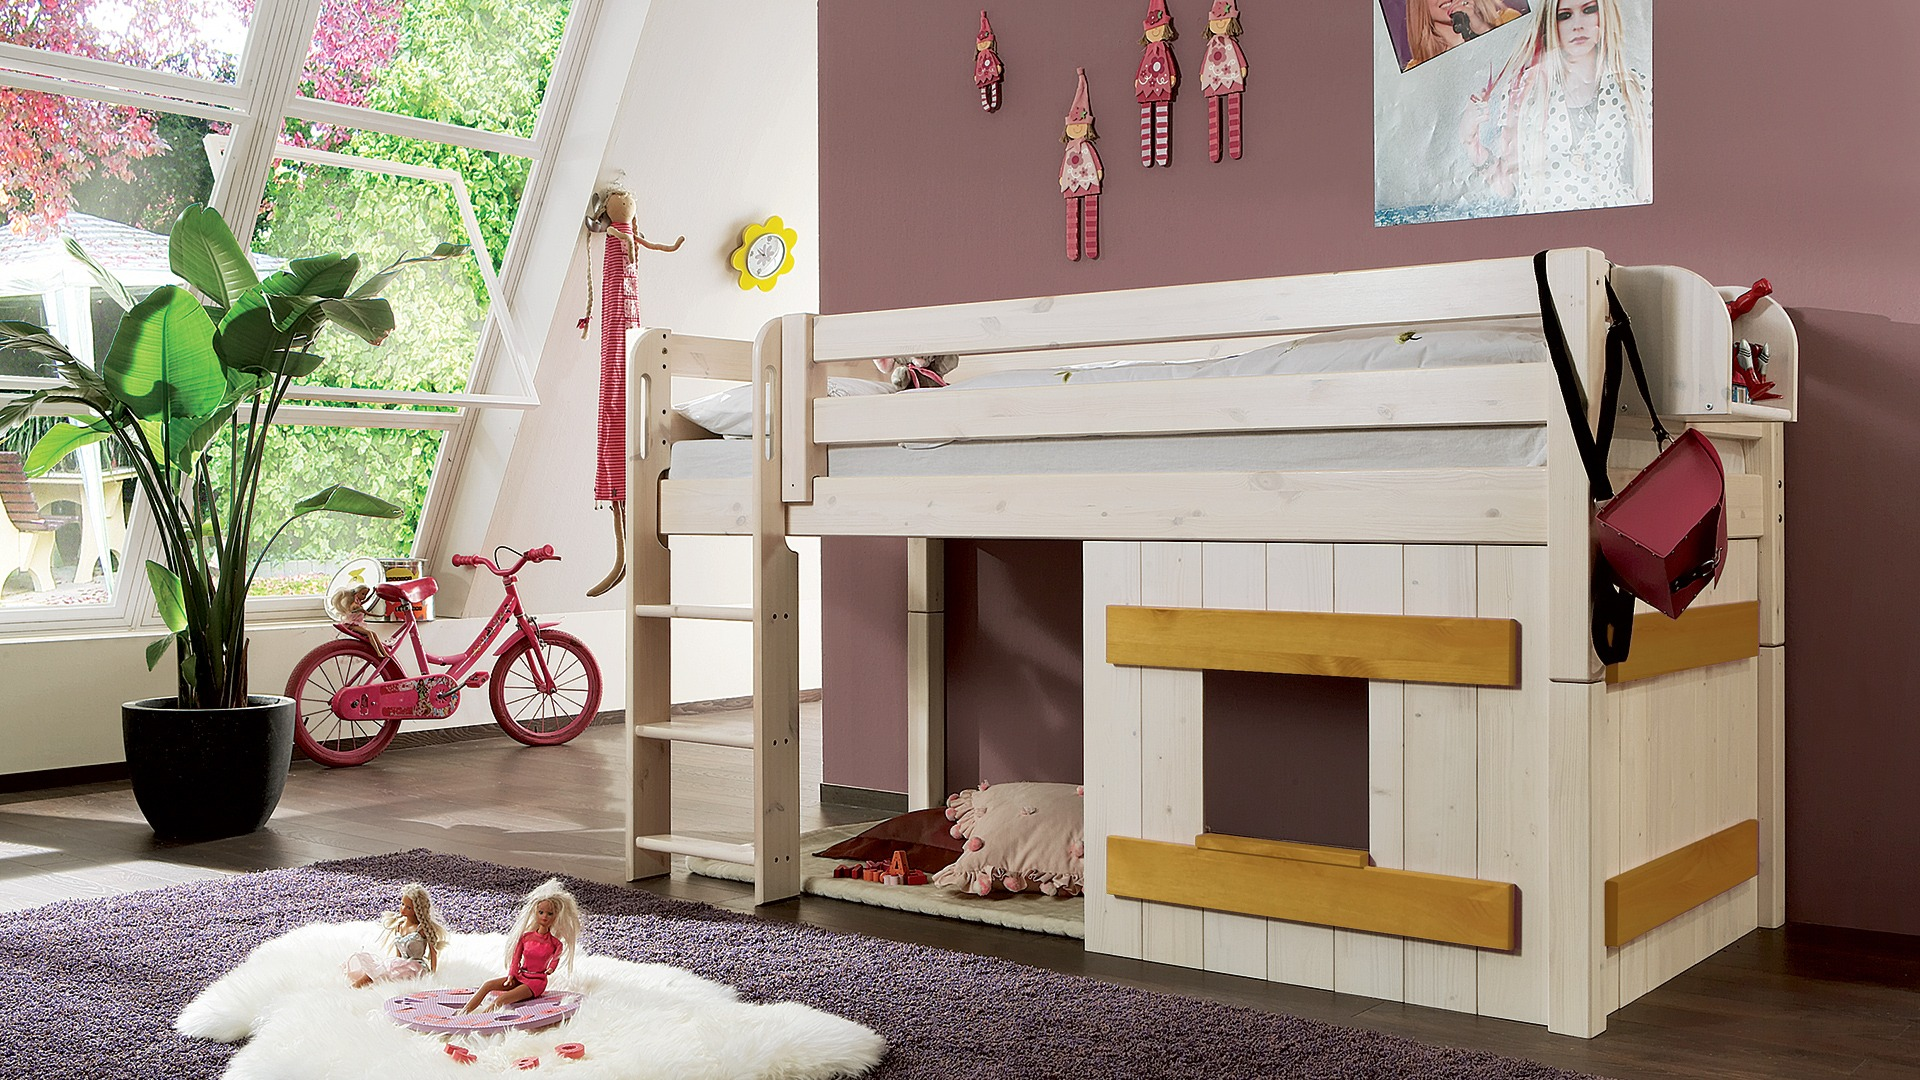 holzverkleidung f r mini hochbett kiddy. Black Bedroom Furniture Sets. Home Design Ideas